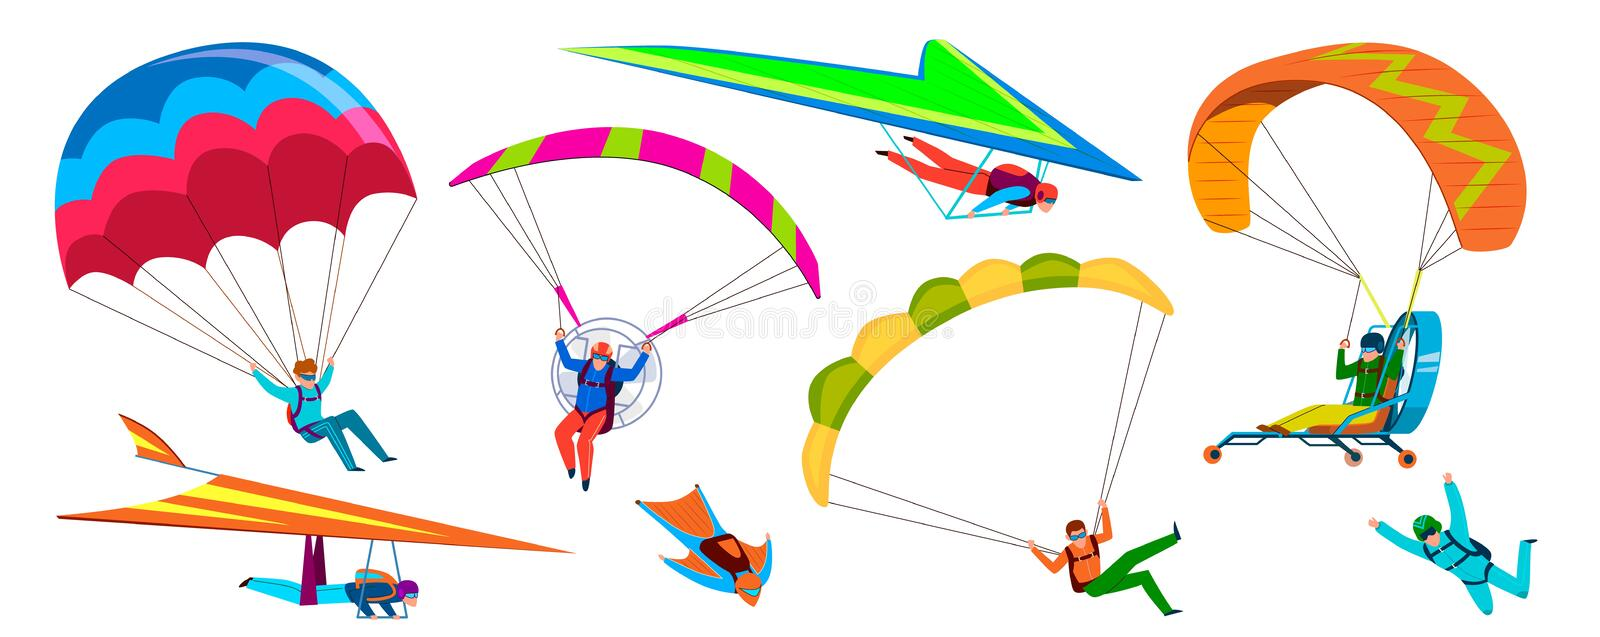 Skydivers. Skydiving adventure, people jump with parachute in sky, fly with paraglider and free flight. Cartoon vector vector illustration